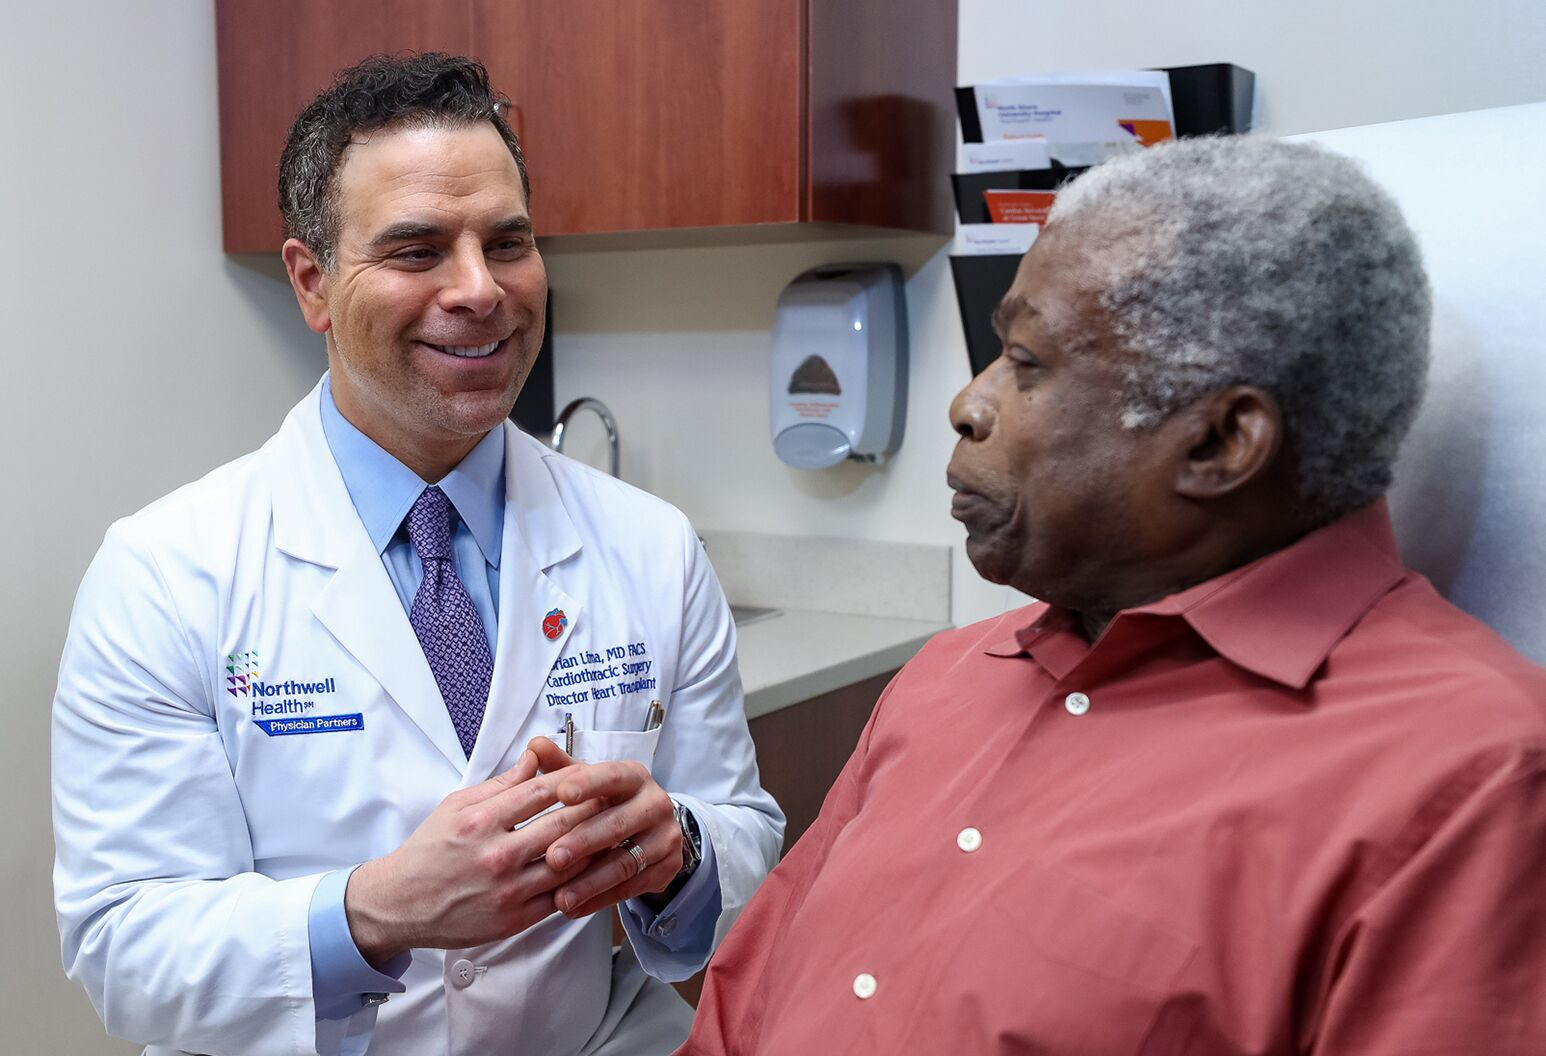 Brian Lima, MD, discusses advanced heart failure with a black patient.